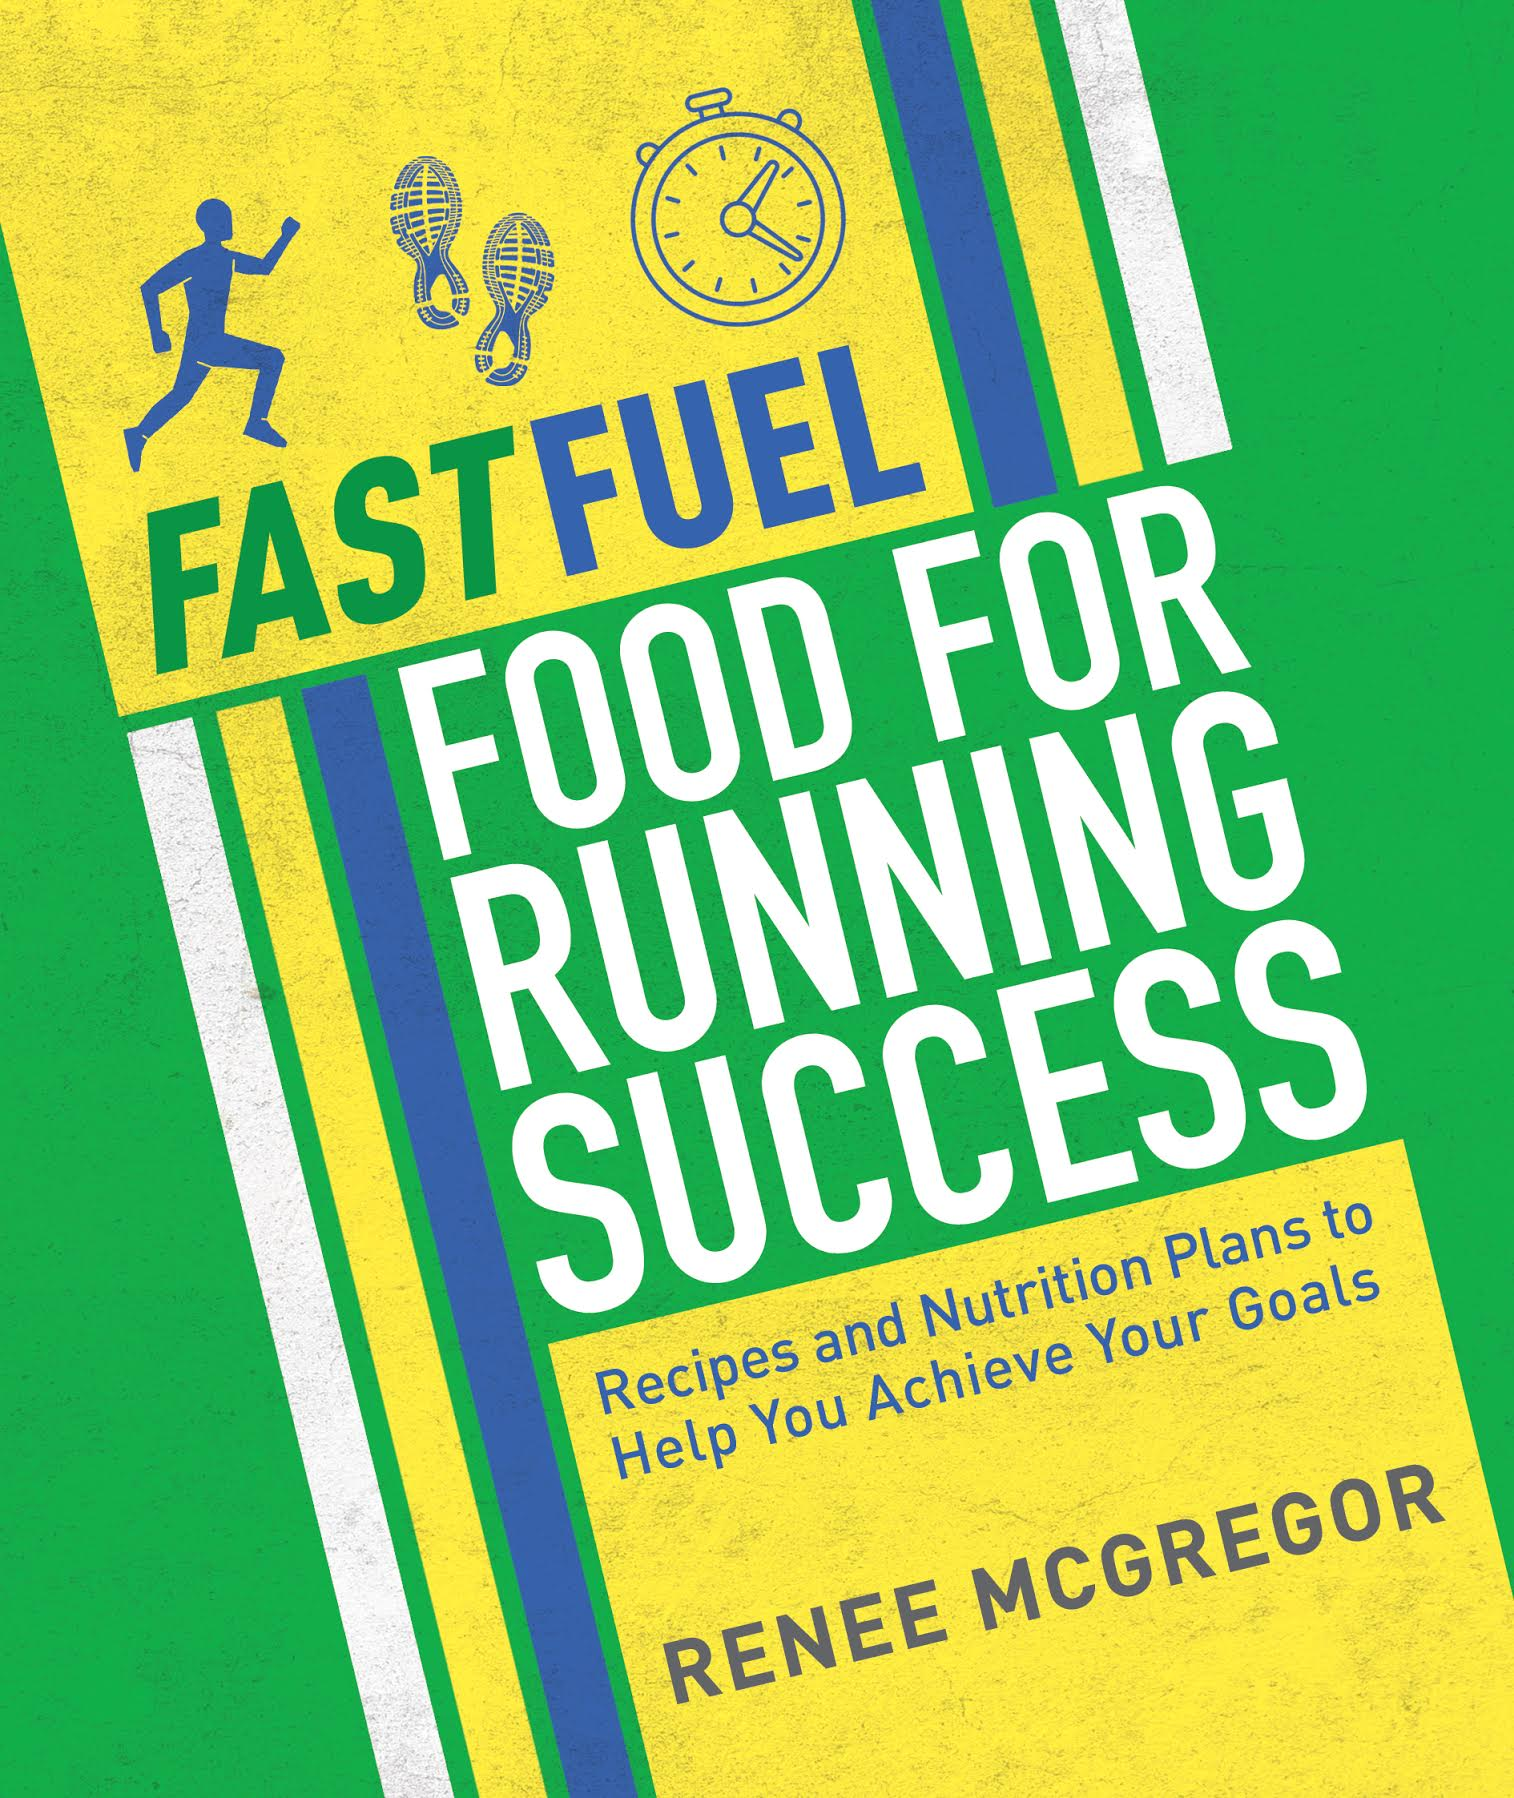 FAST FUEL, FOOD FOR RUNNING SUCCESS